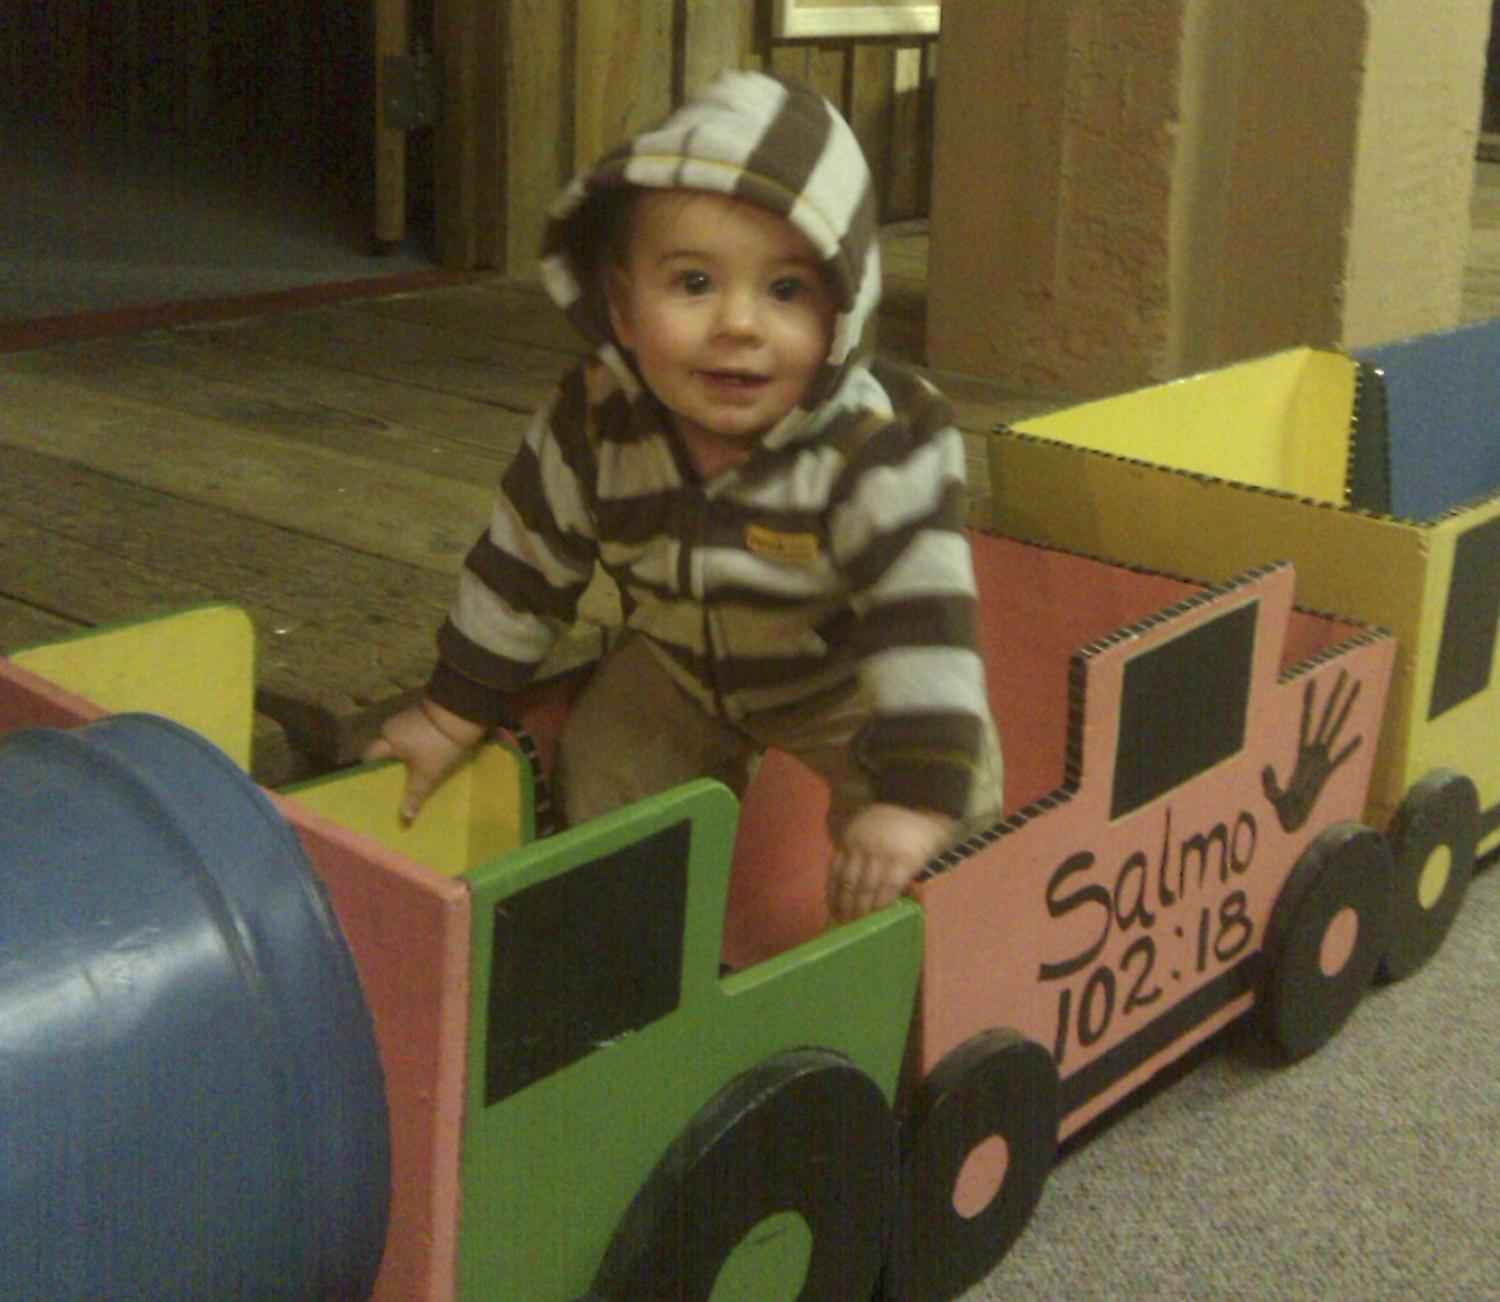 little boy playing in cardboard train